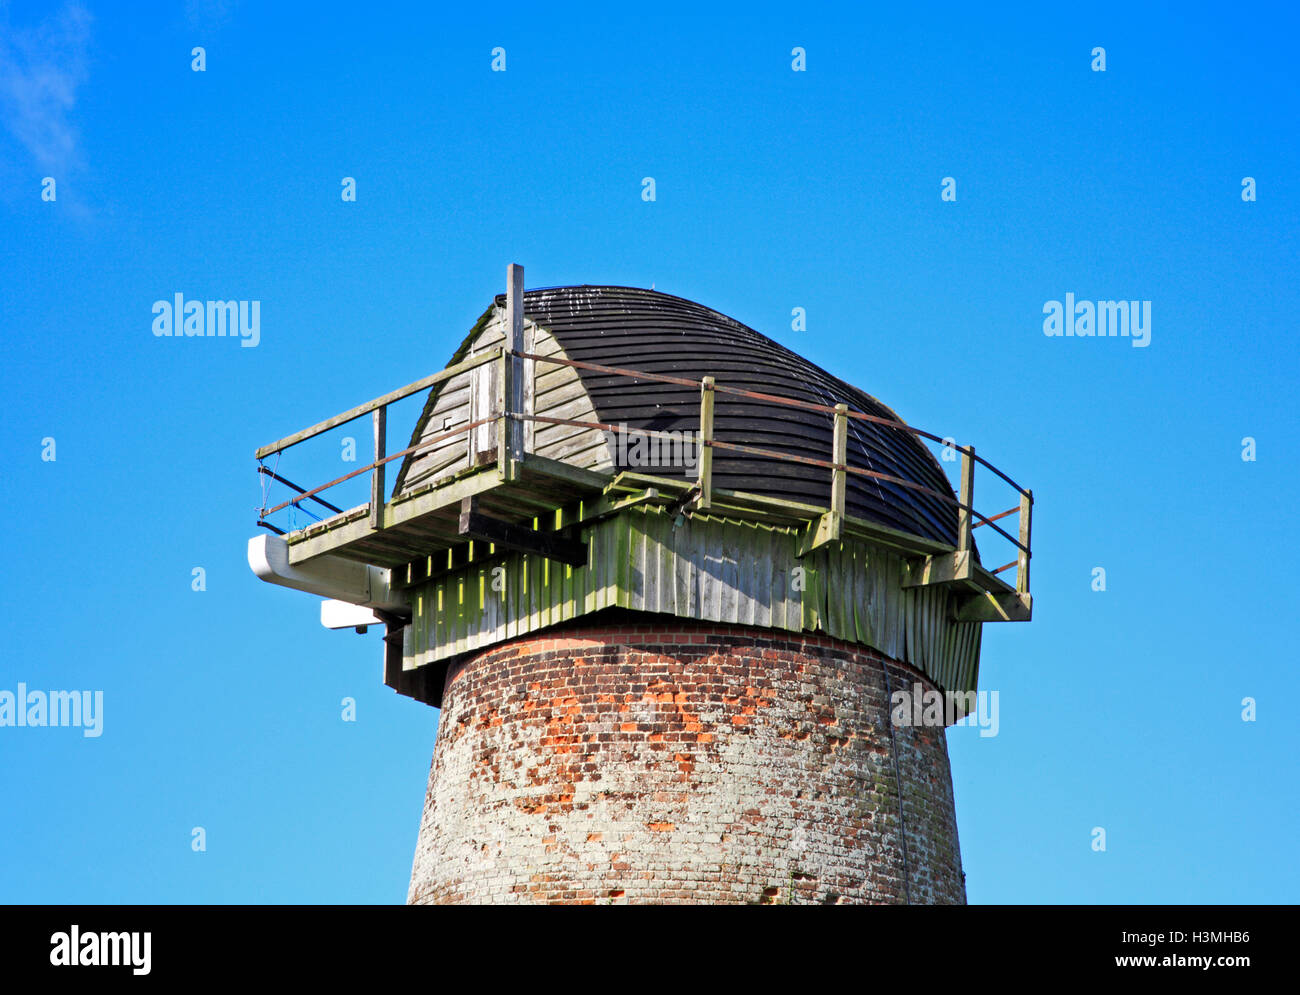 A view of the boat-shaped cap of the redundant drainage mill at Clippesby, Norfolk, England, United Kingdom. - Stock Image